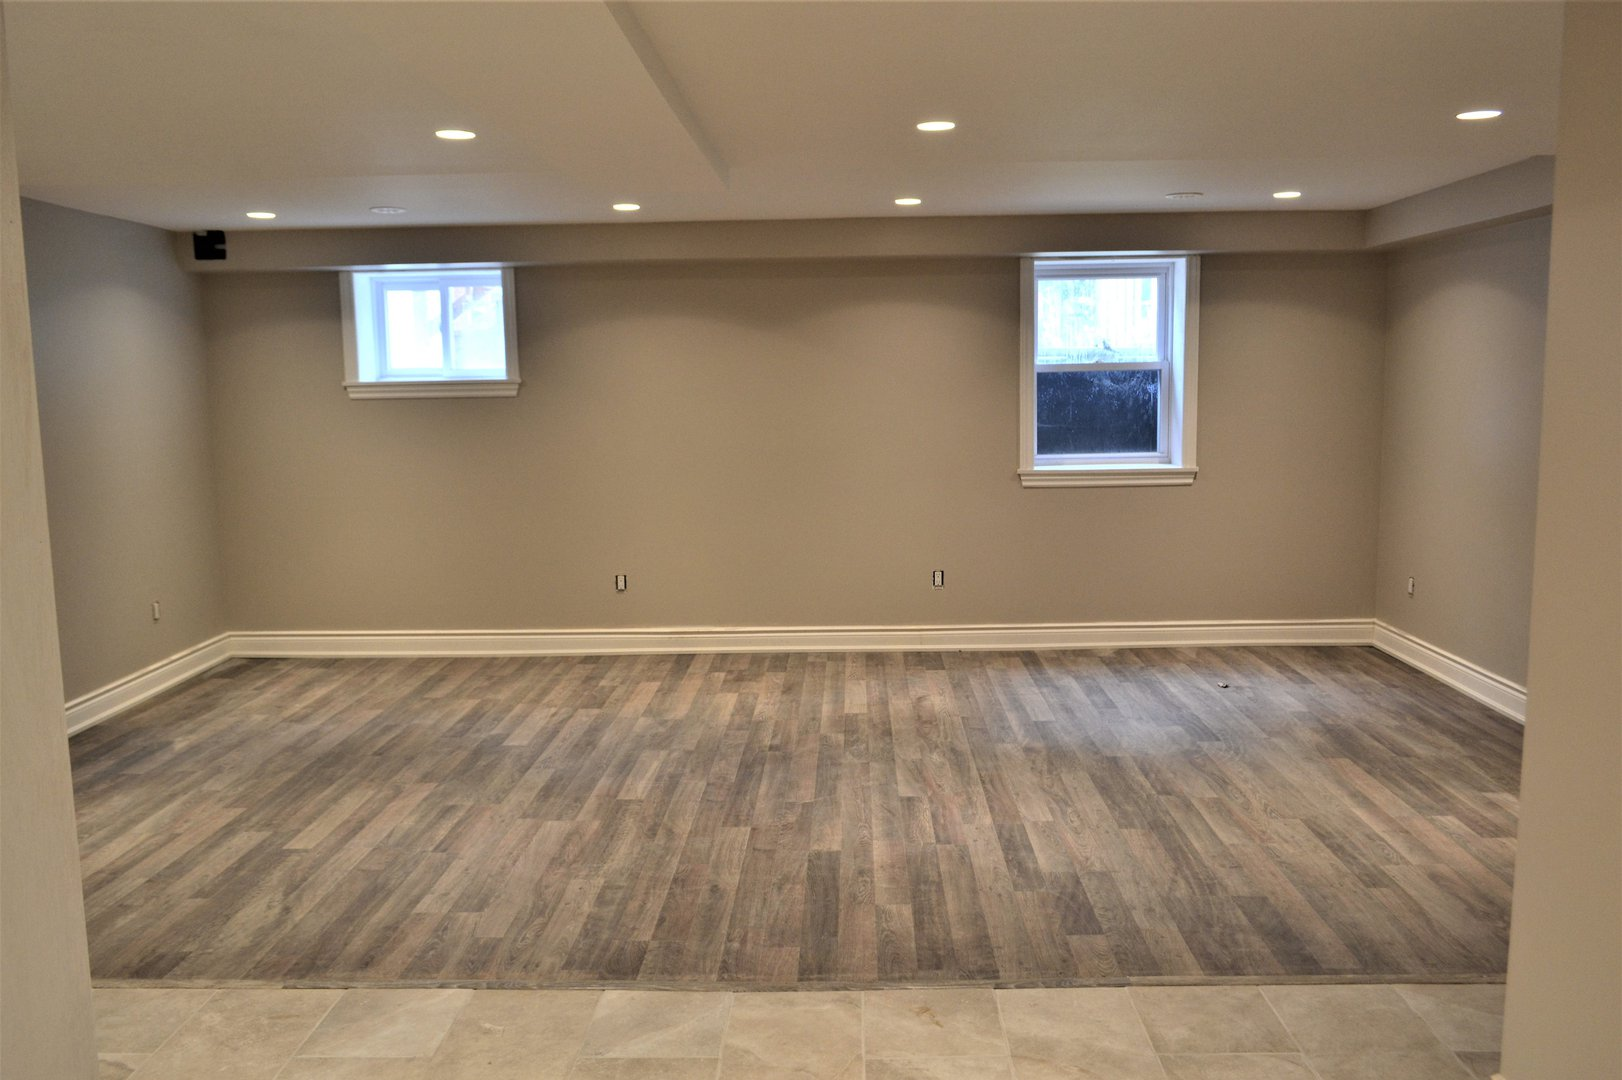 House for rent at 20 Sixth St, Etobicoke, ON. This is the empty room with hardwood floor, natural light and tile floor.